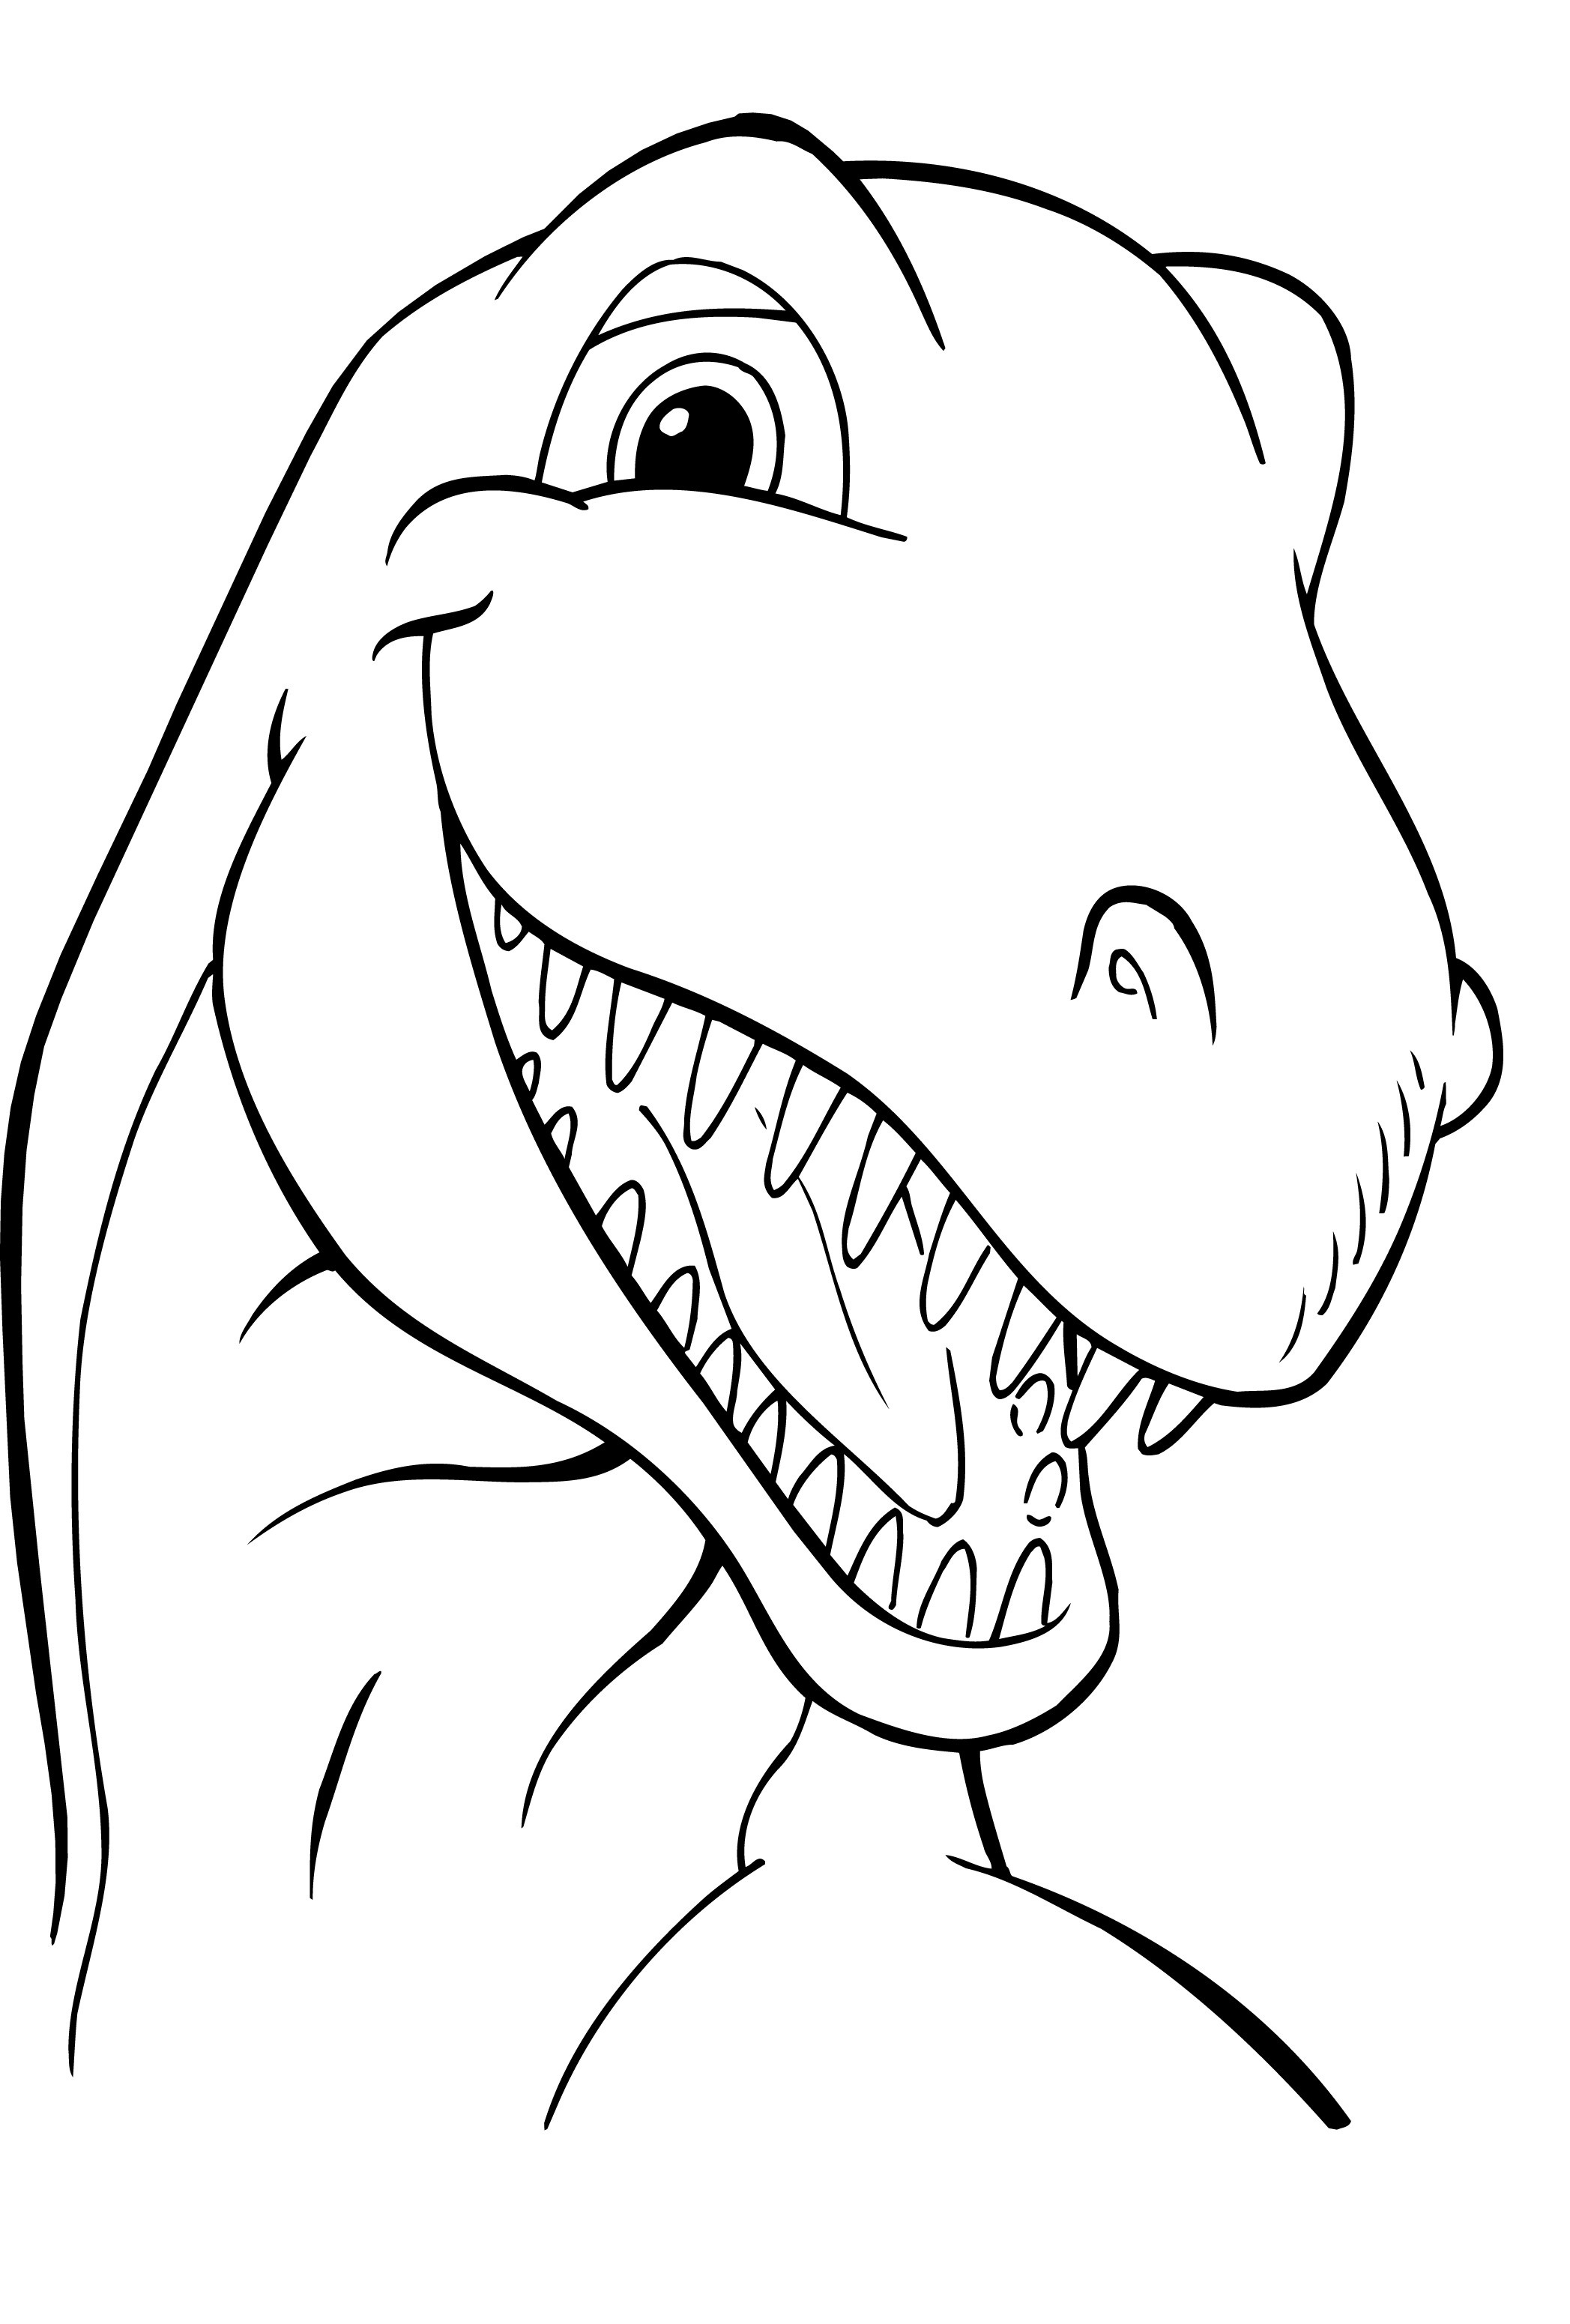 dinasaur coloring pages - photo#30